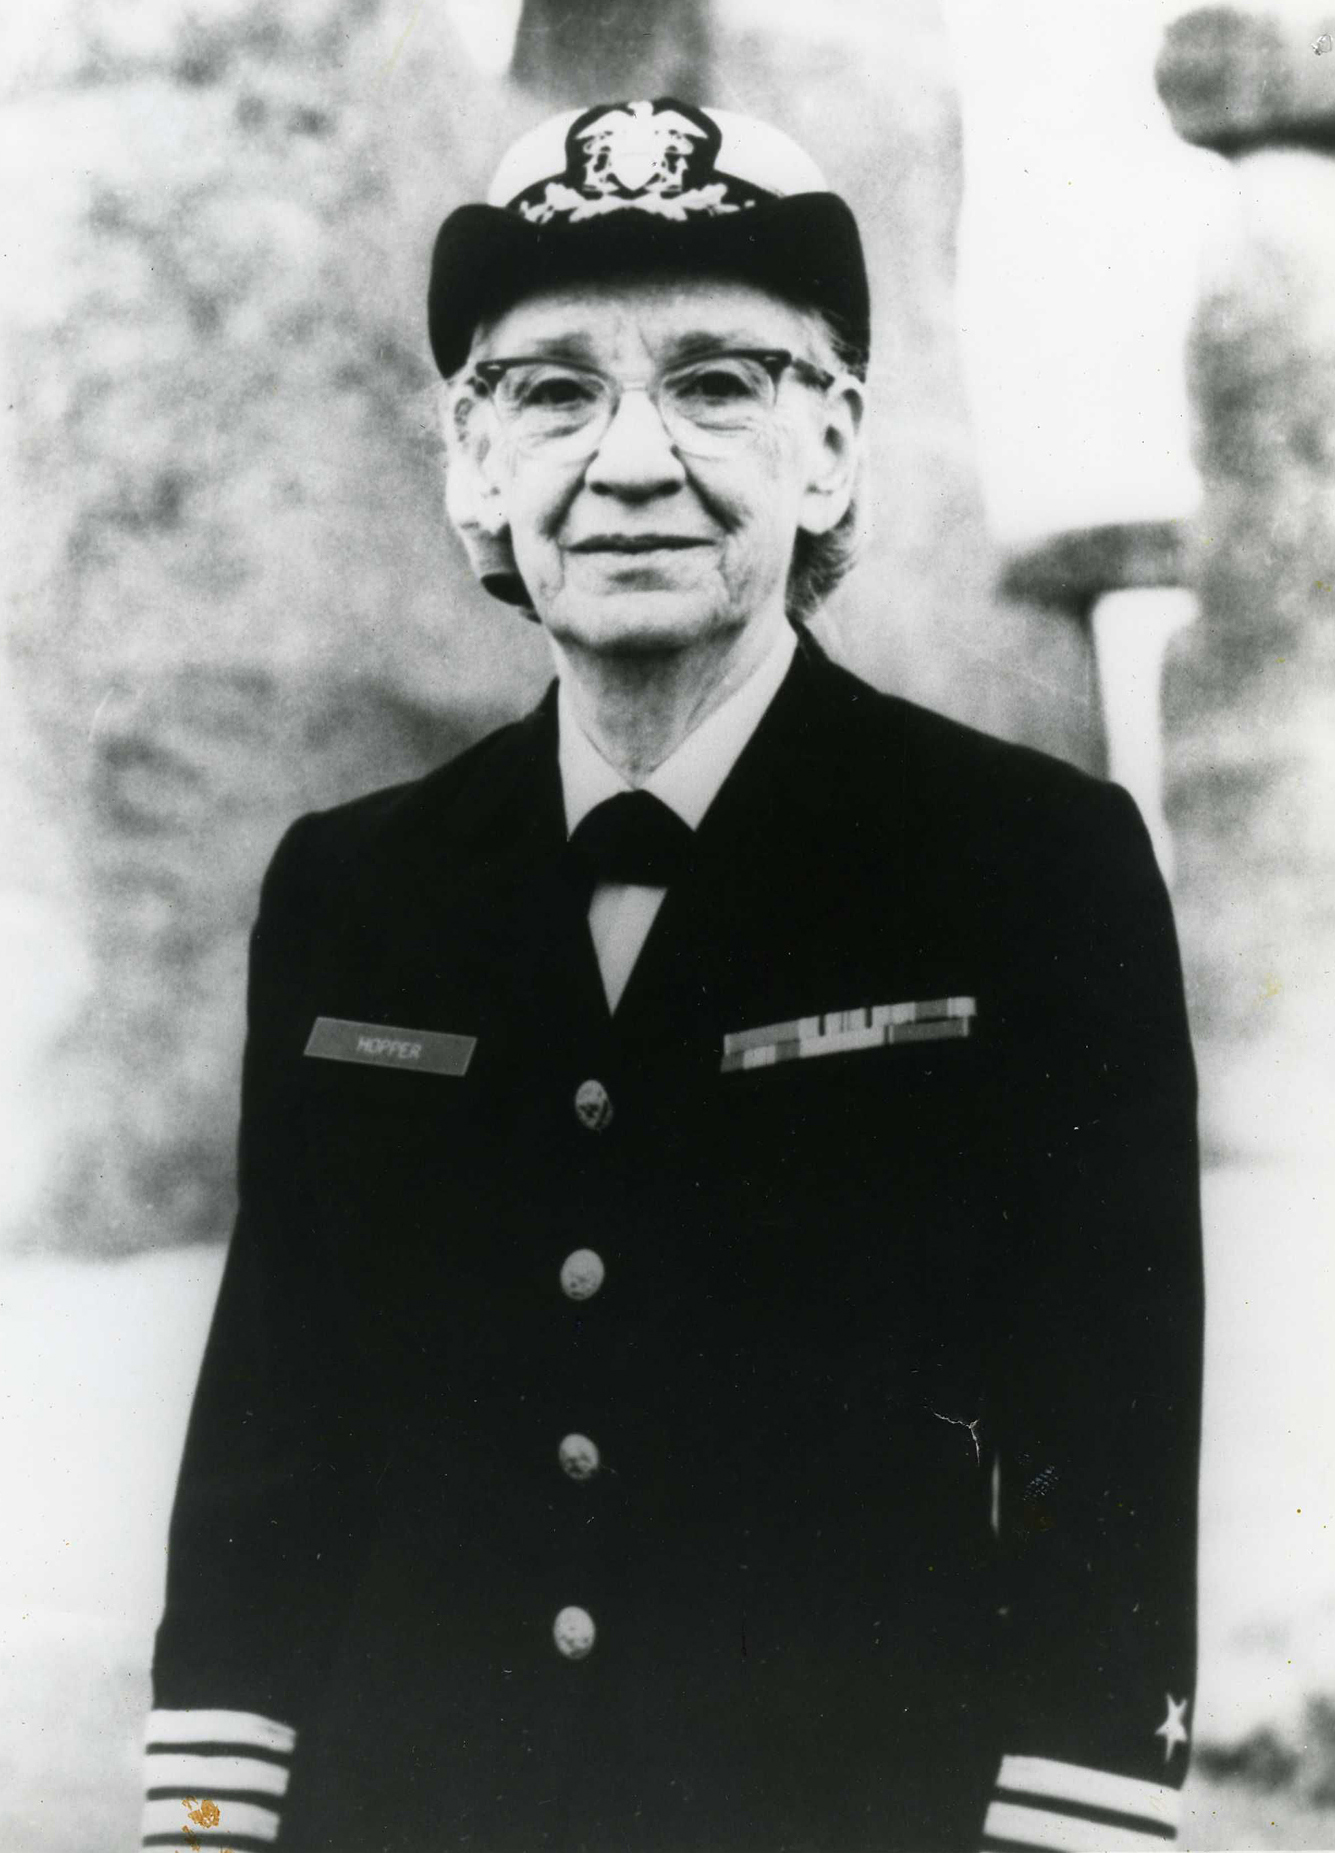 Captain Grace Hopper, about 1975. Gift of Grace Hopper.